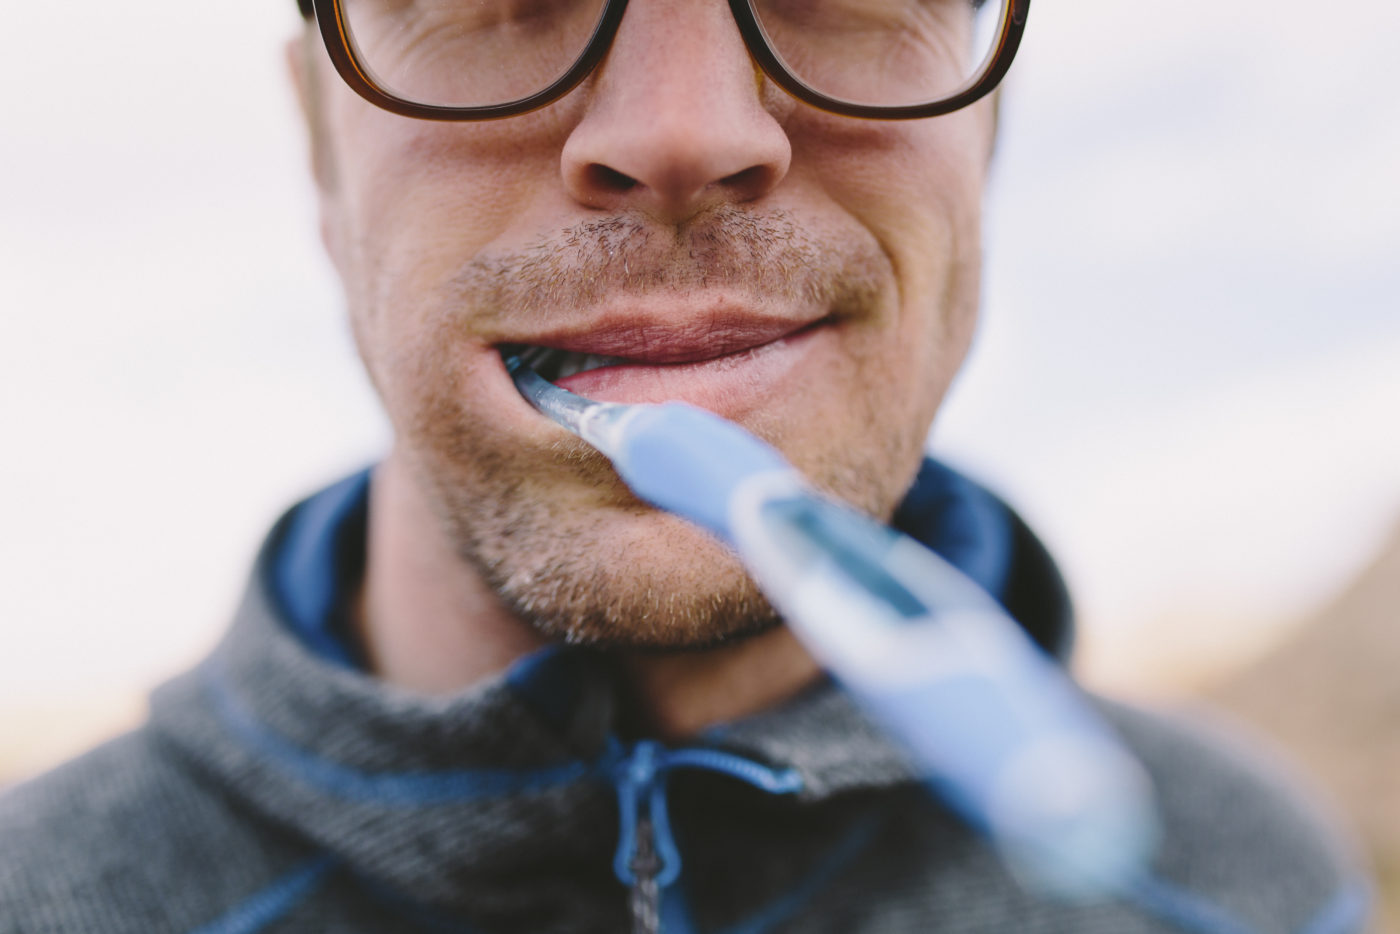 A man smiles with a toothbrush in his mouth